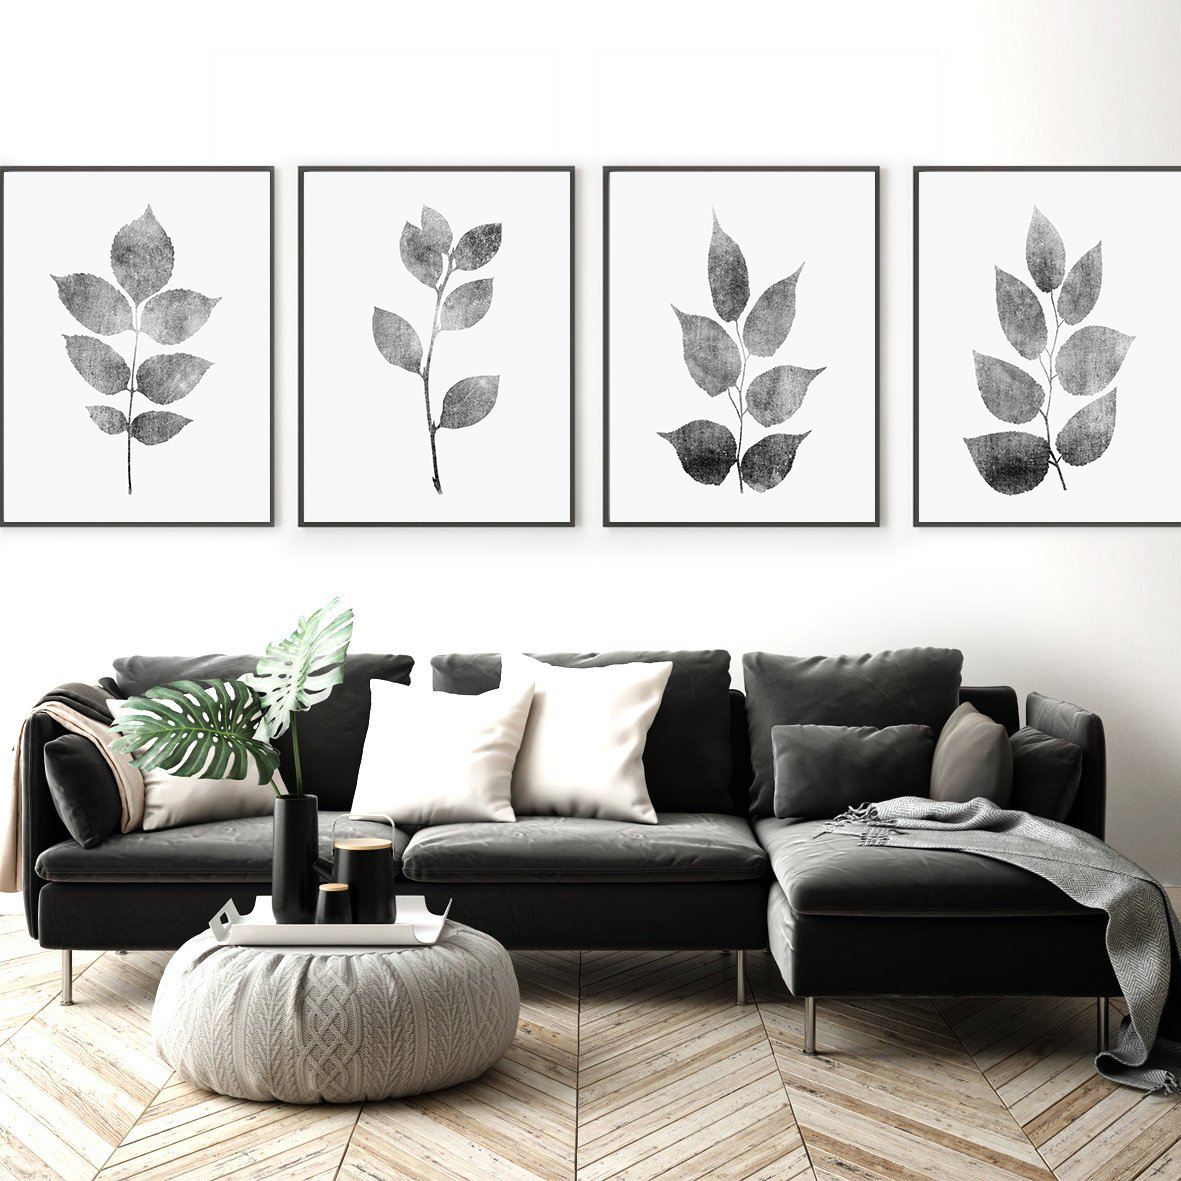 Plant Wall Art, Gray Wall Art, Leaves Wall Art, Grey Leaf example image 2